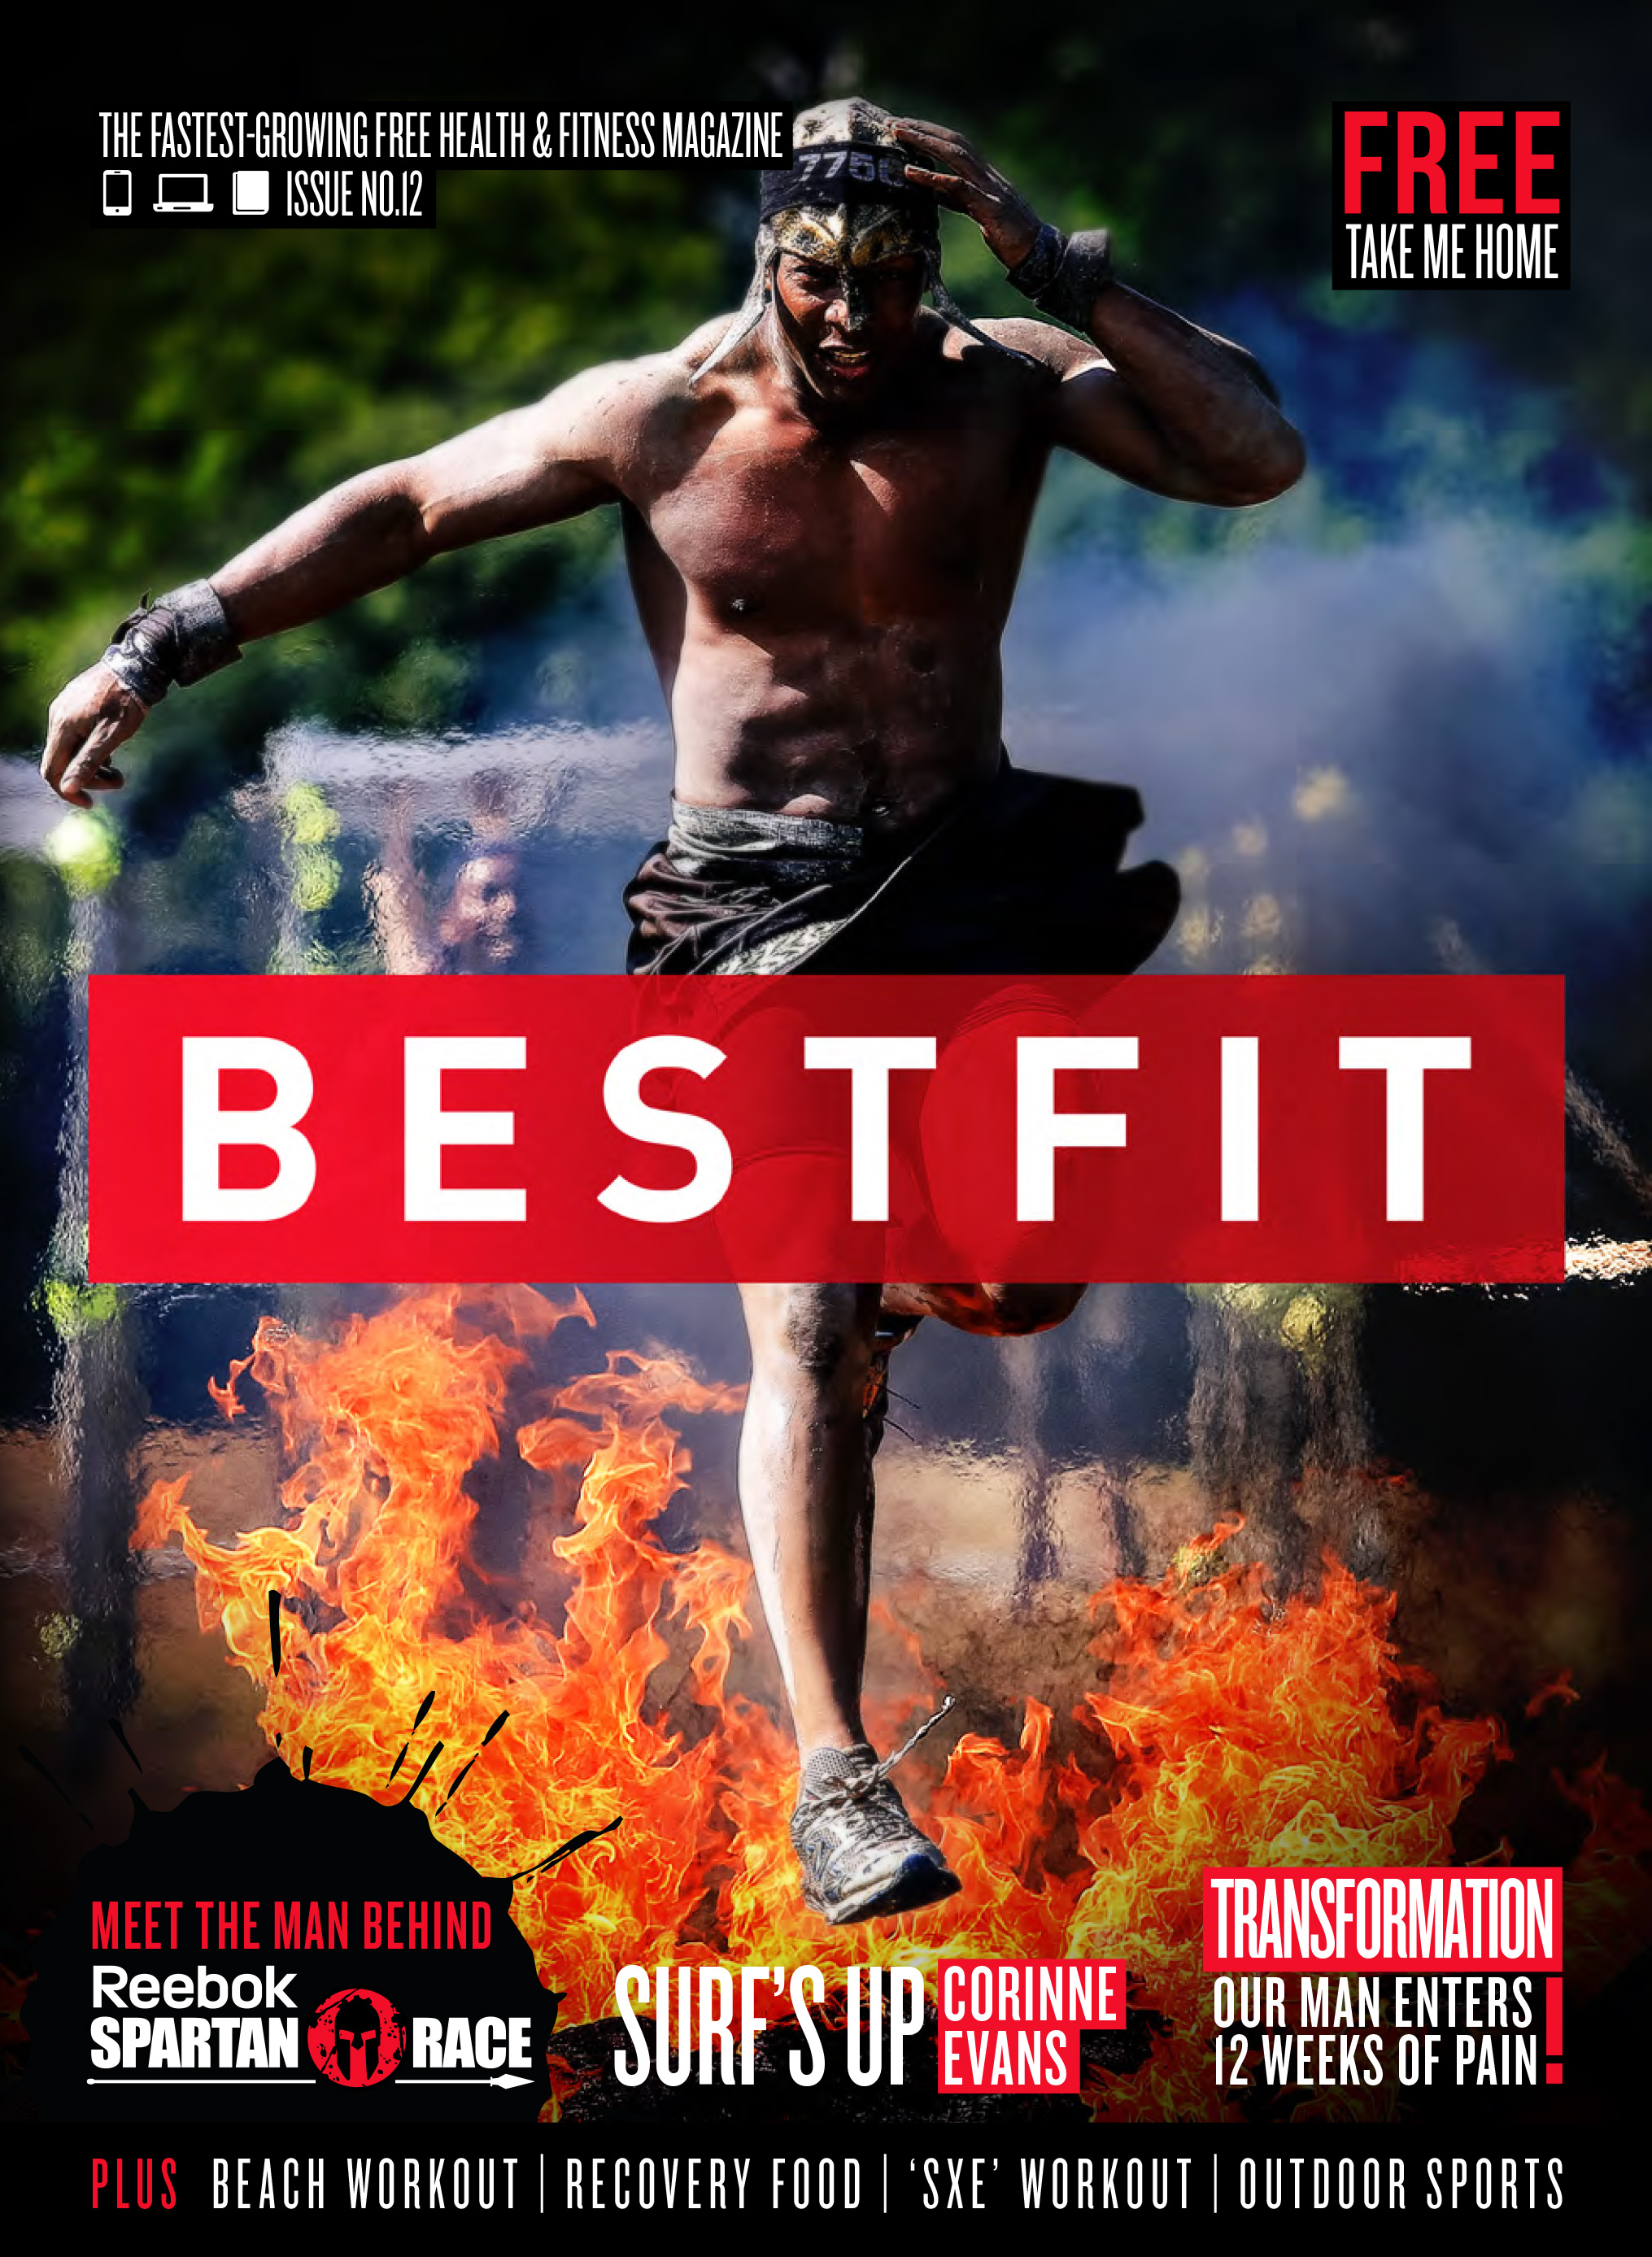 Bestfit issue 12 cover photo